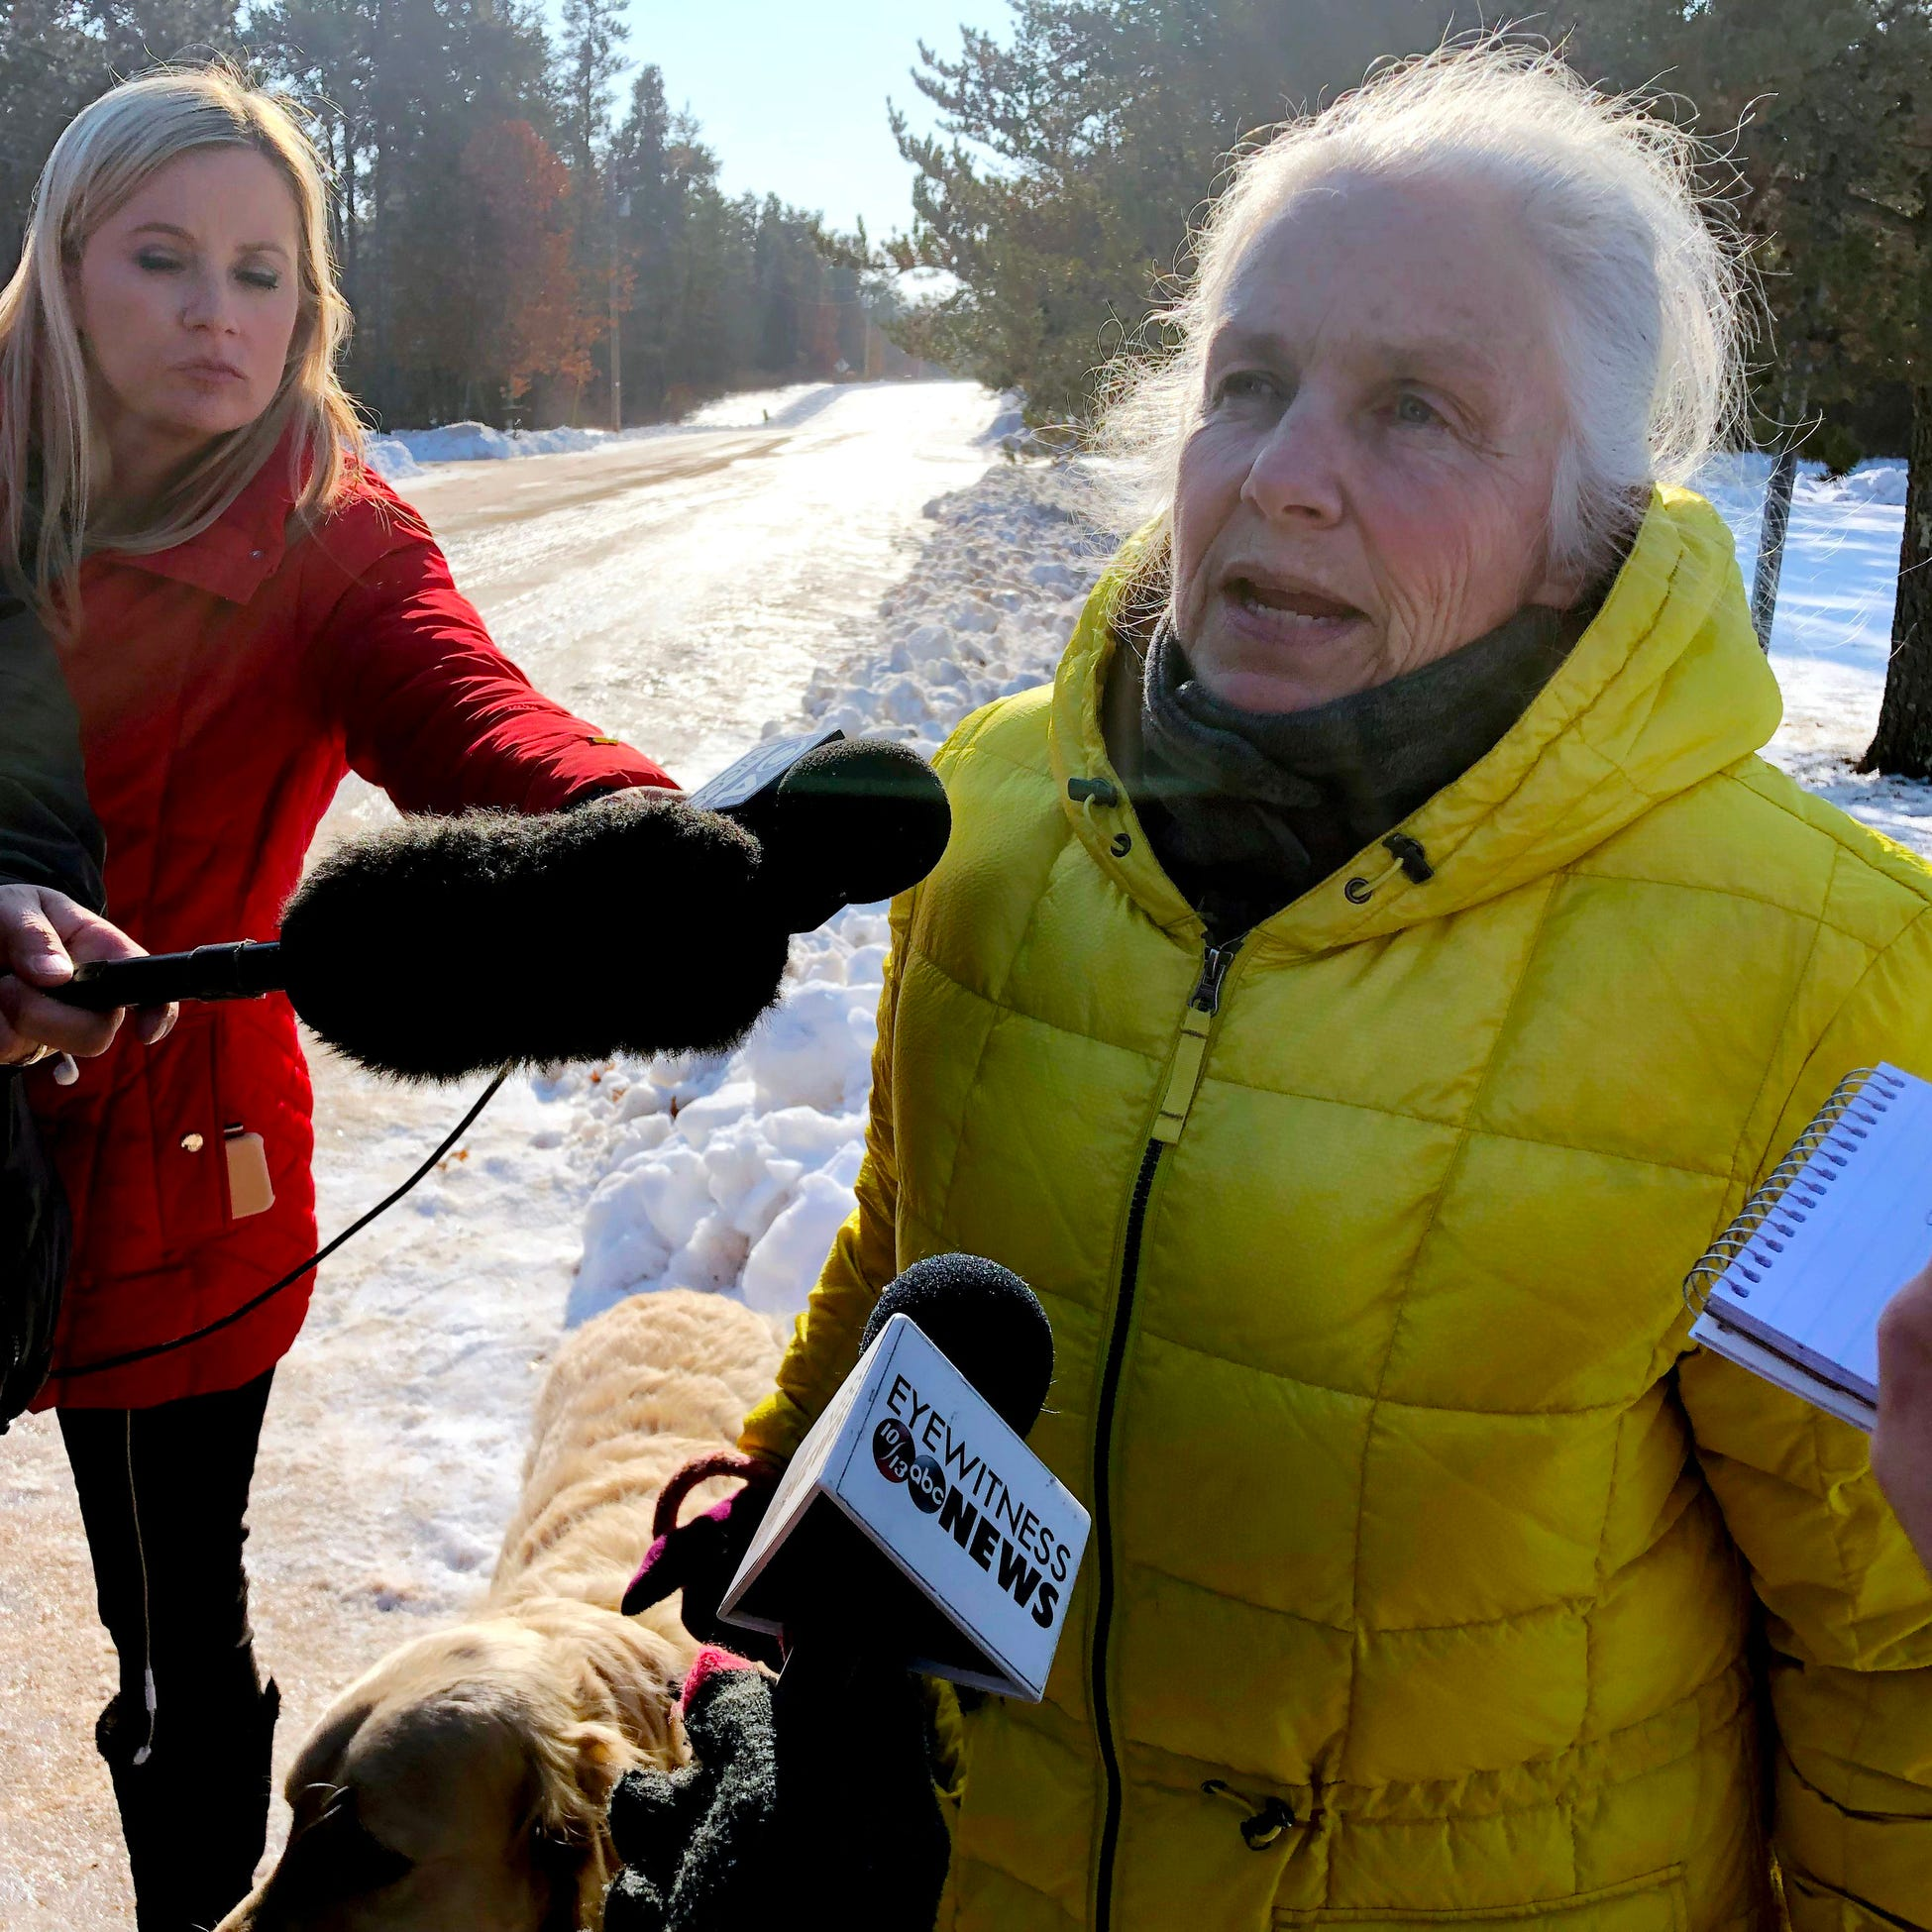 Jeanne Nutter speaks to the media on Friday in Gordon. Nutter was walking her dog near the cabin she owns with her husband Forrest on Thursday when she encountered Jayme Closs coming out of nearby woods.